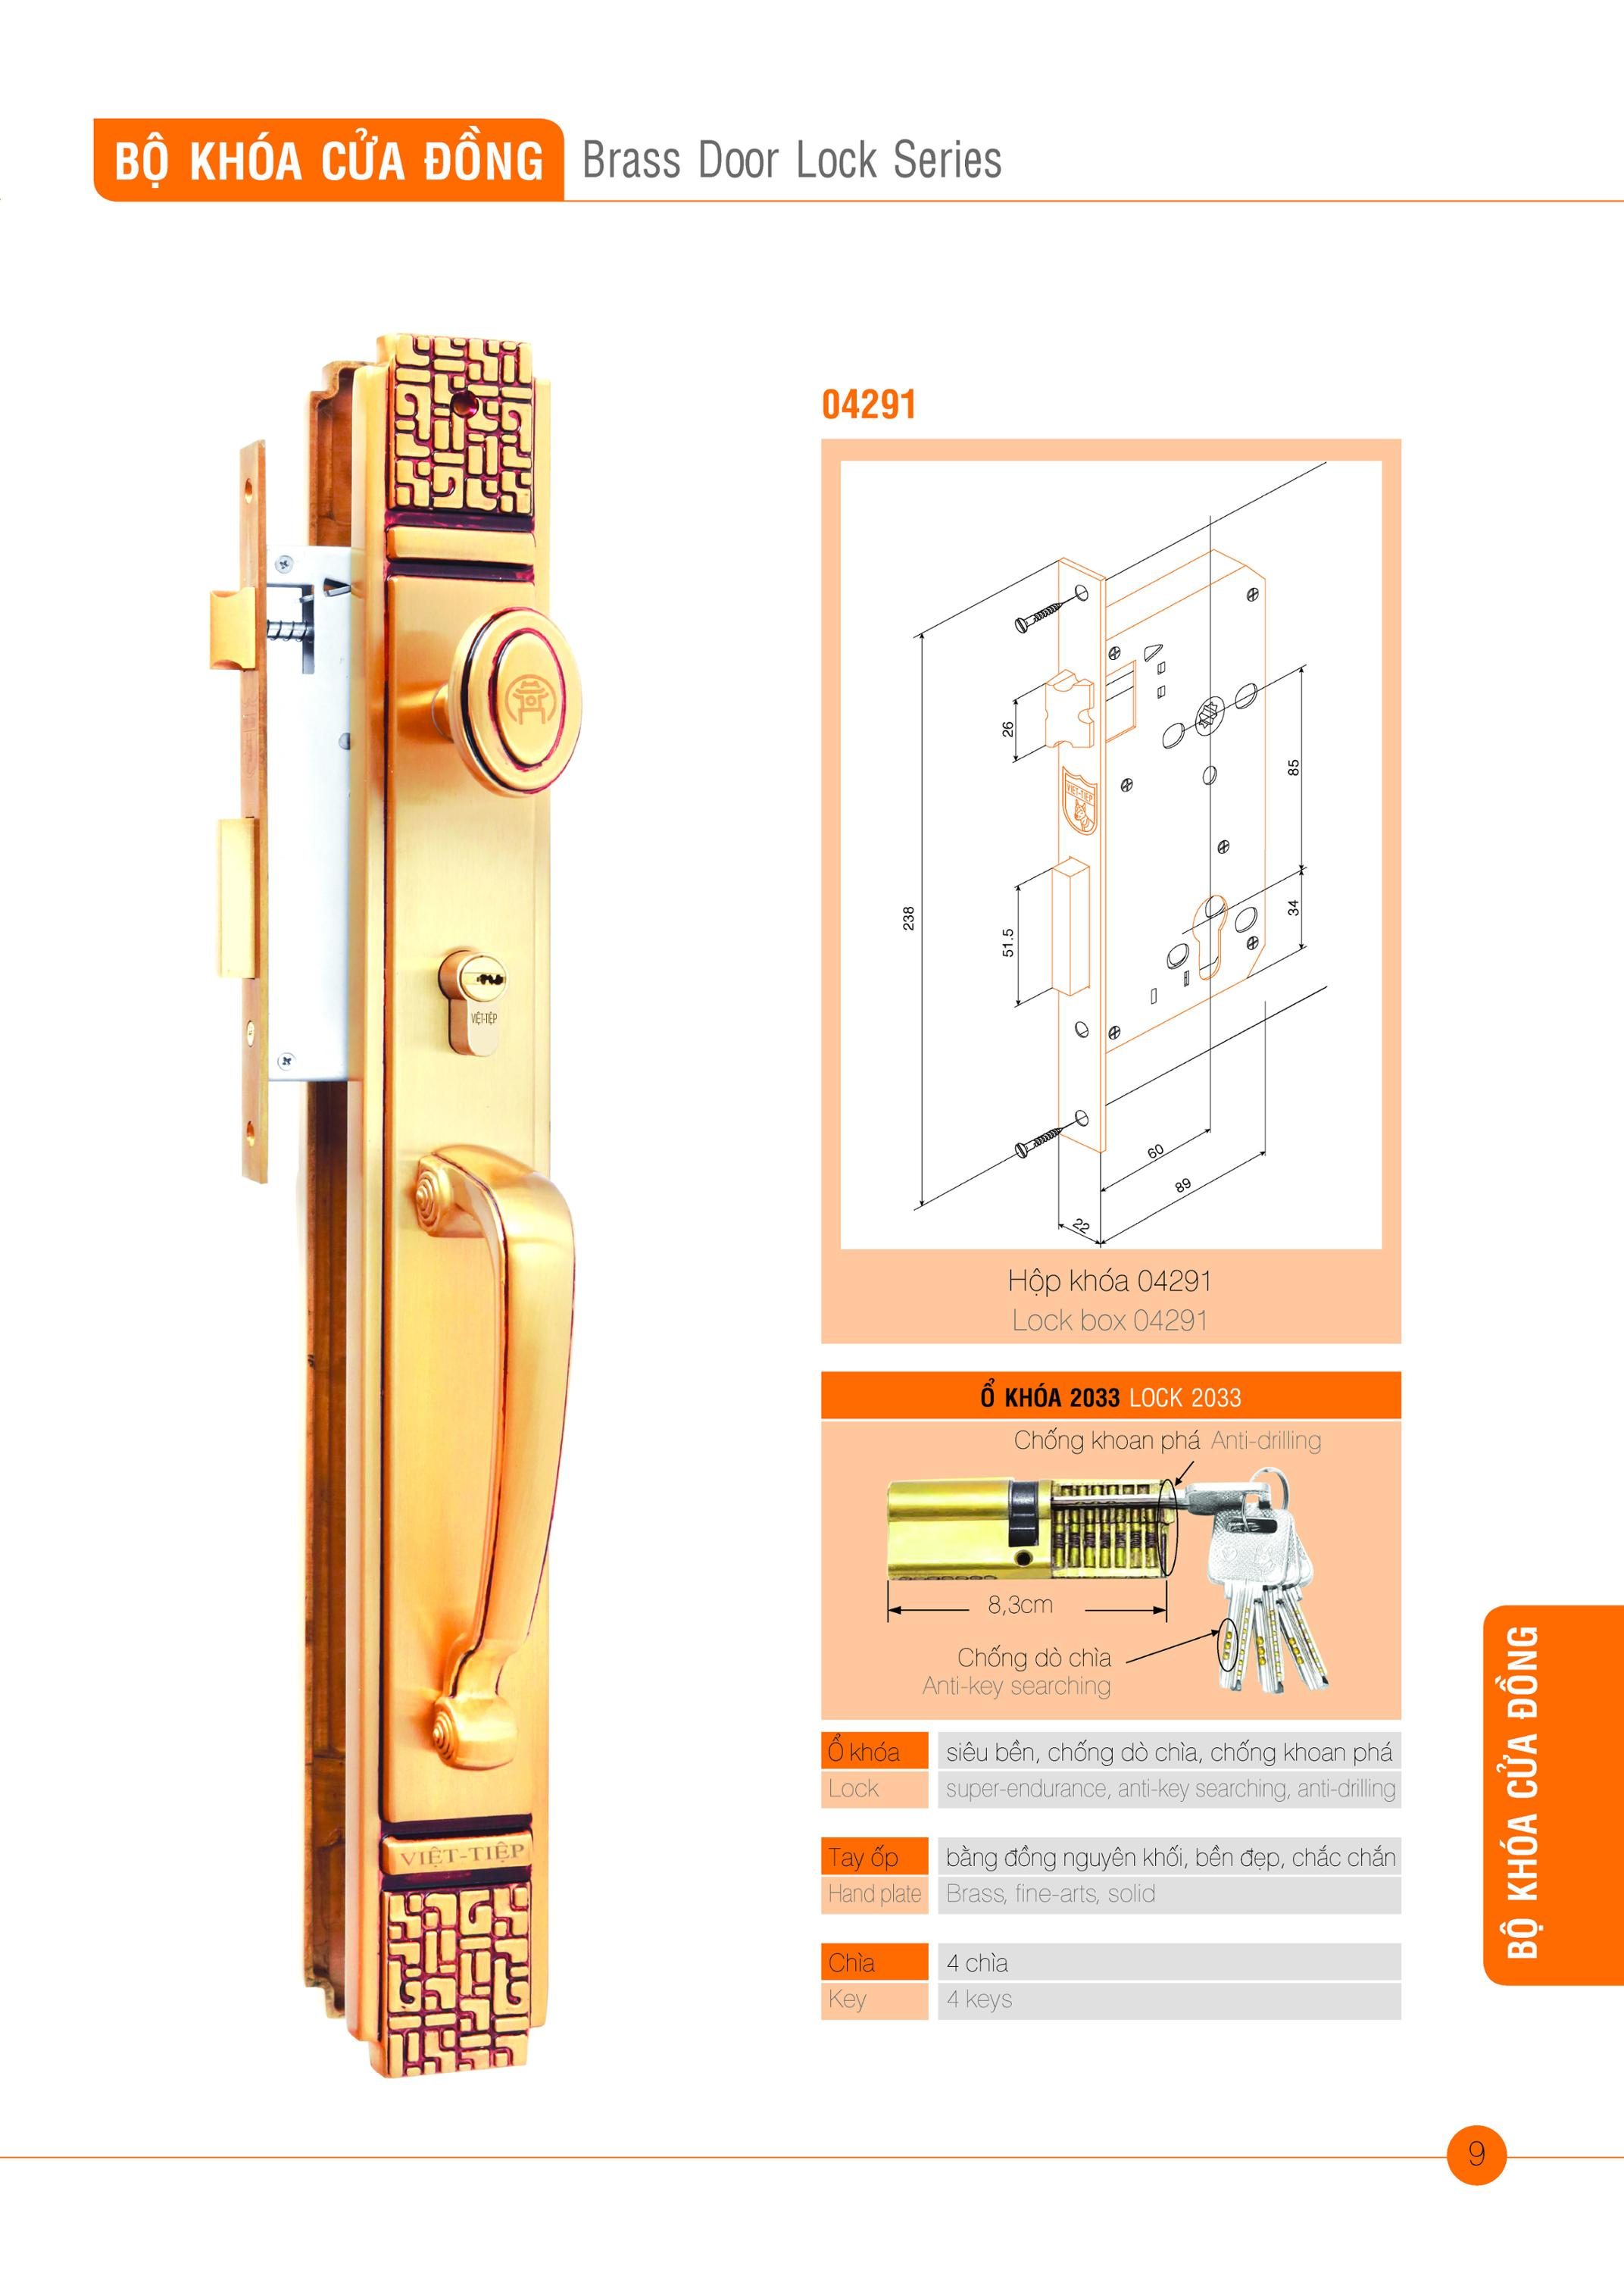 Brass Door lock Series 04291